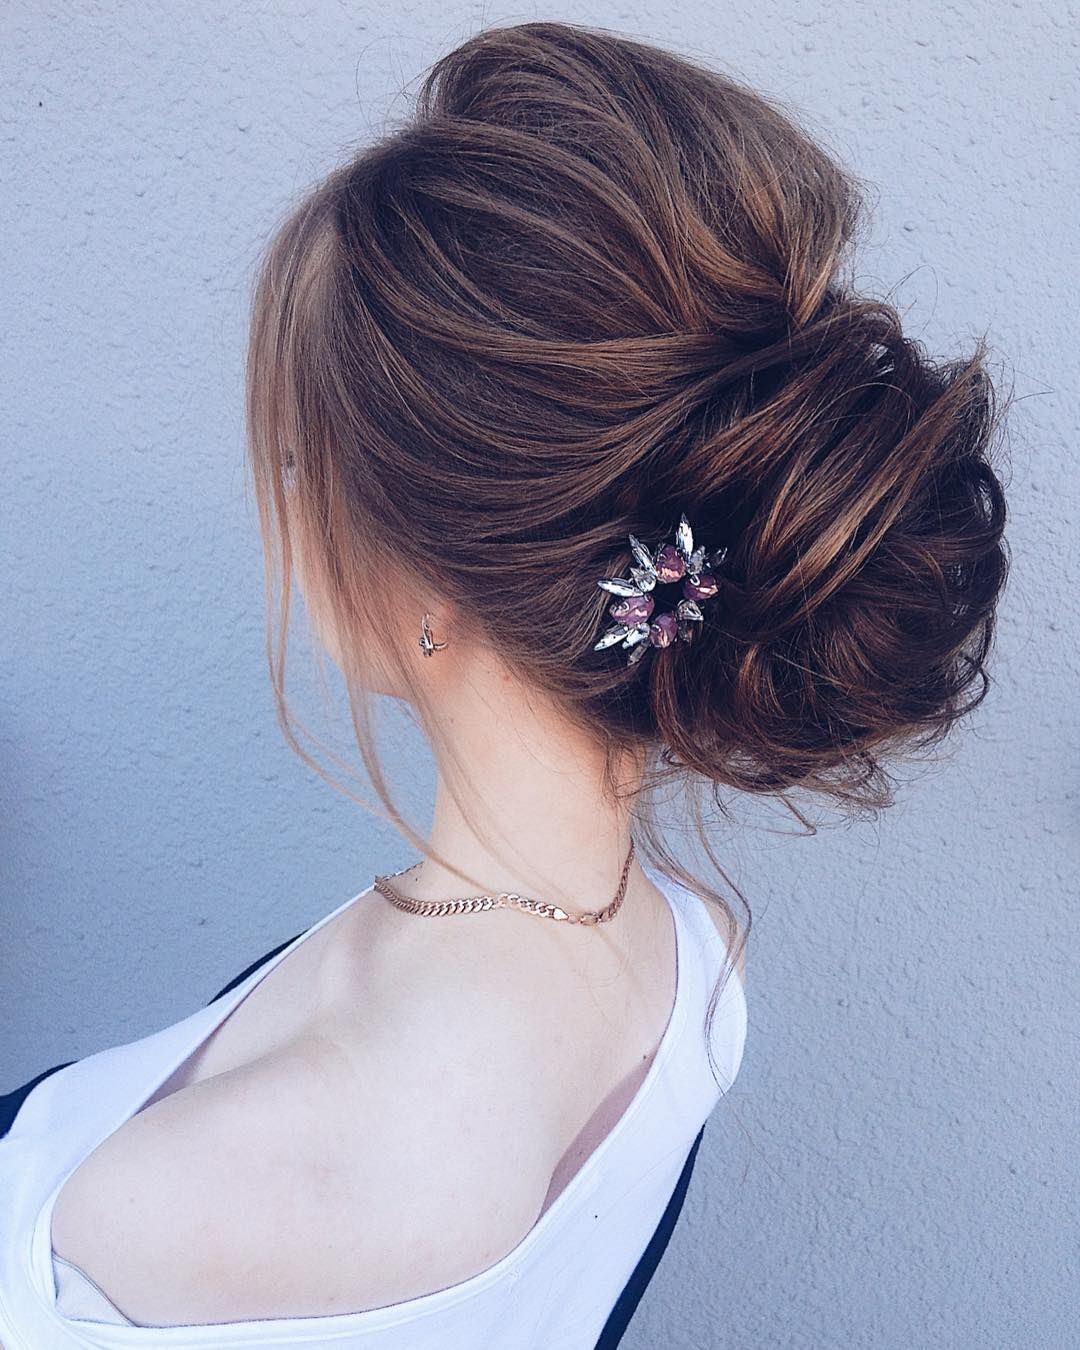 This pretty updo wedding hairstyle with hair accessories perfect for